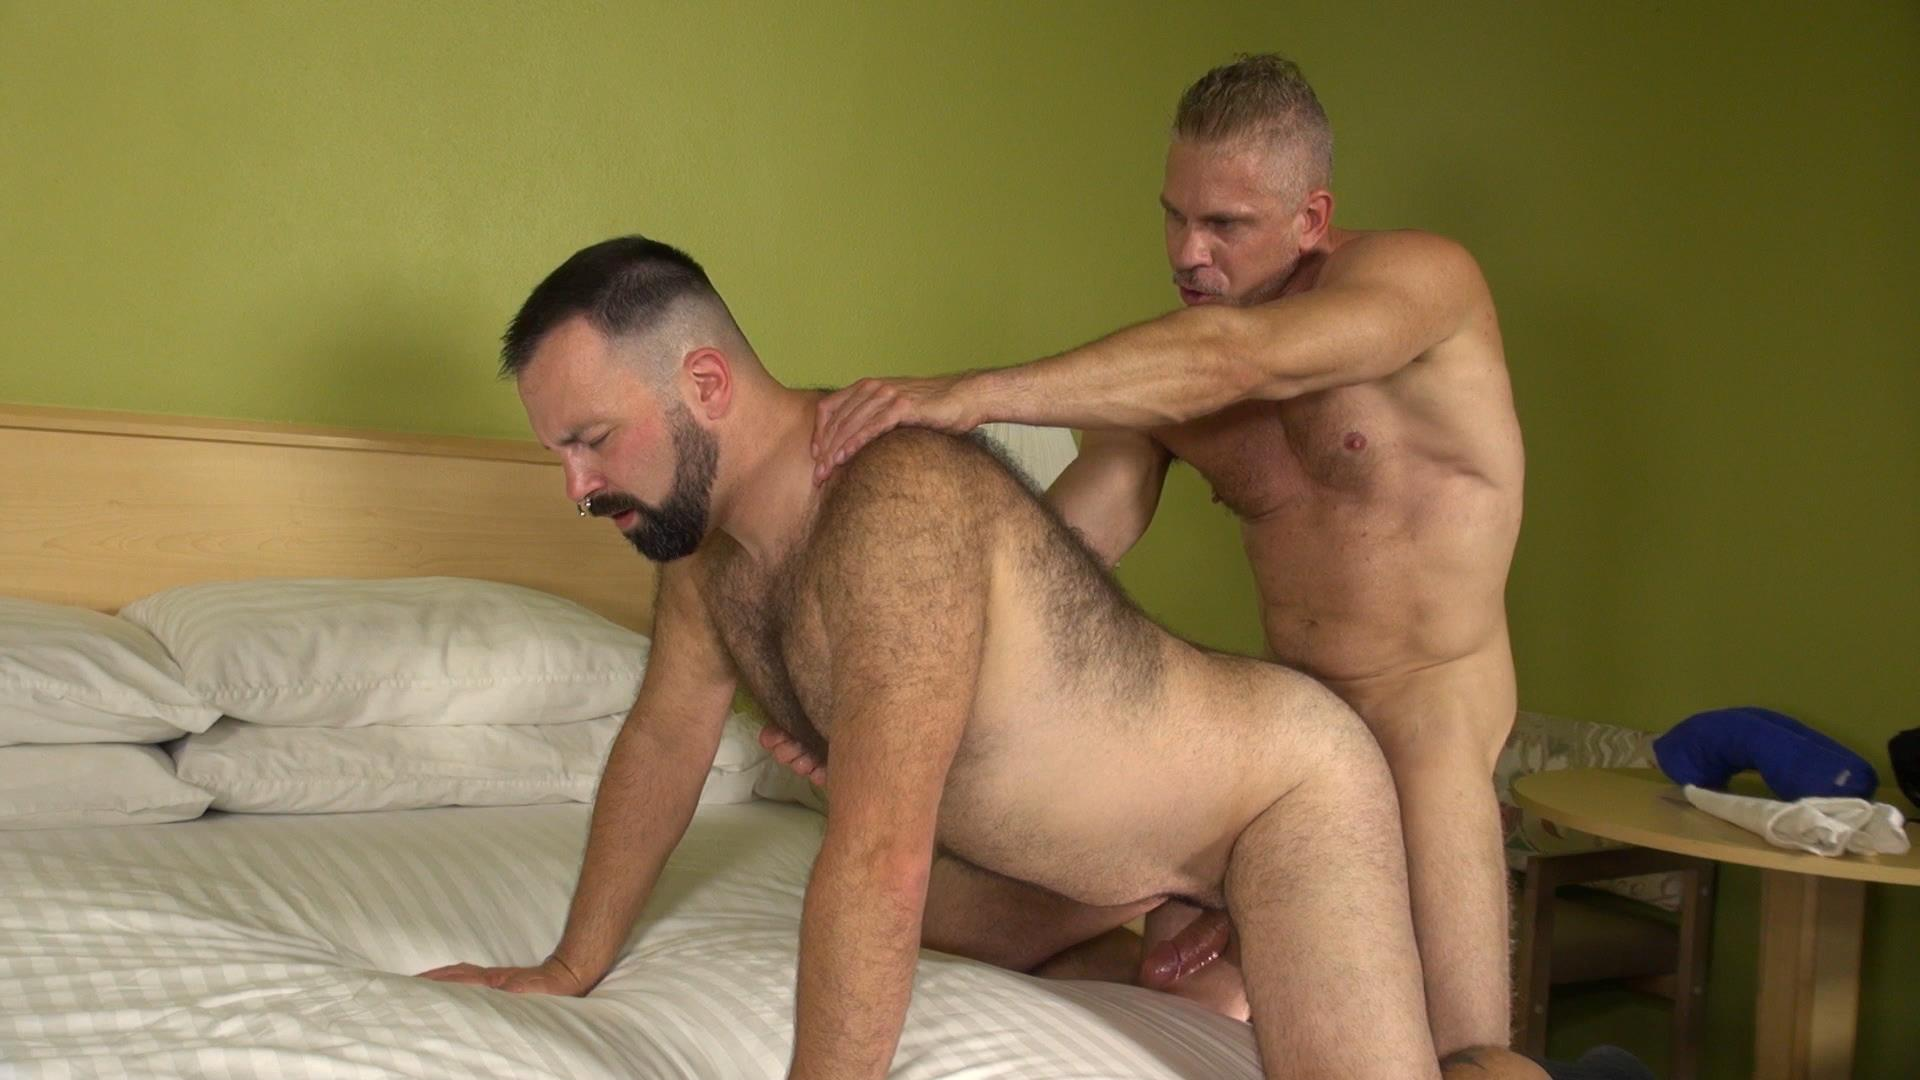 Raw-and-Rough-Boy-Fillmore-and-Sam-Dixon-Hairy-Muscle-Bears-Fucking-Bareback-Amateur-Gay-Porn-03 Hairy Muscle Bears Barebacking At A Cheap Motel